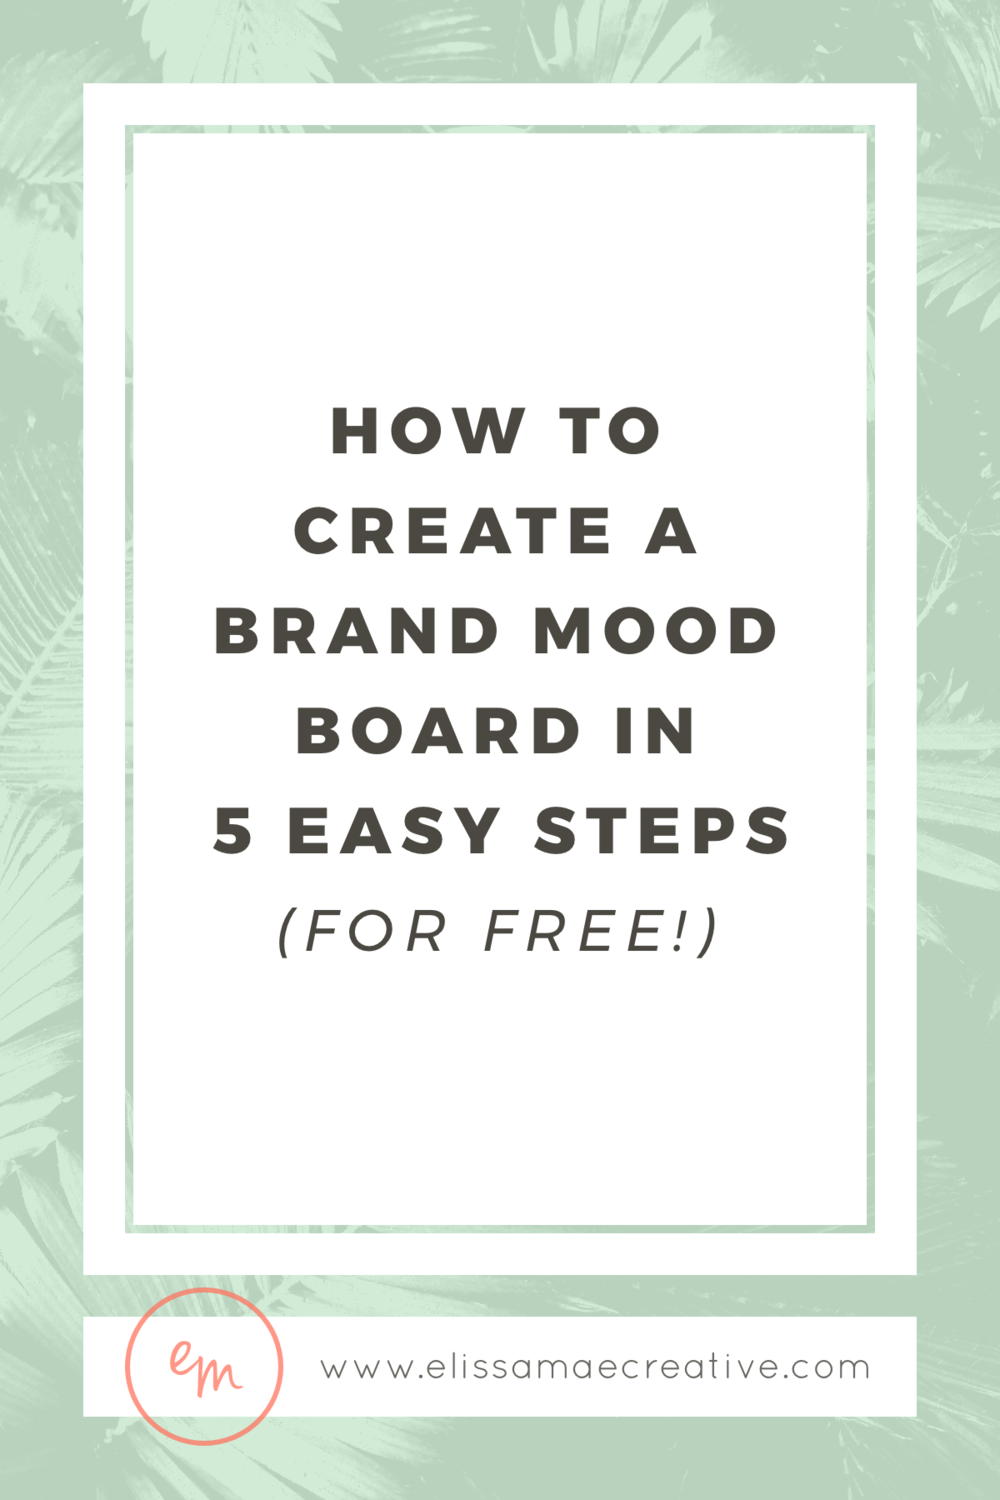 How to Create a Brand Mood Board in 5 Easy Steps